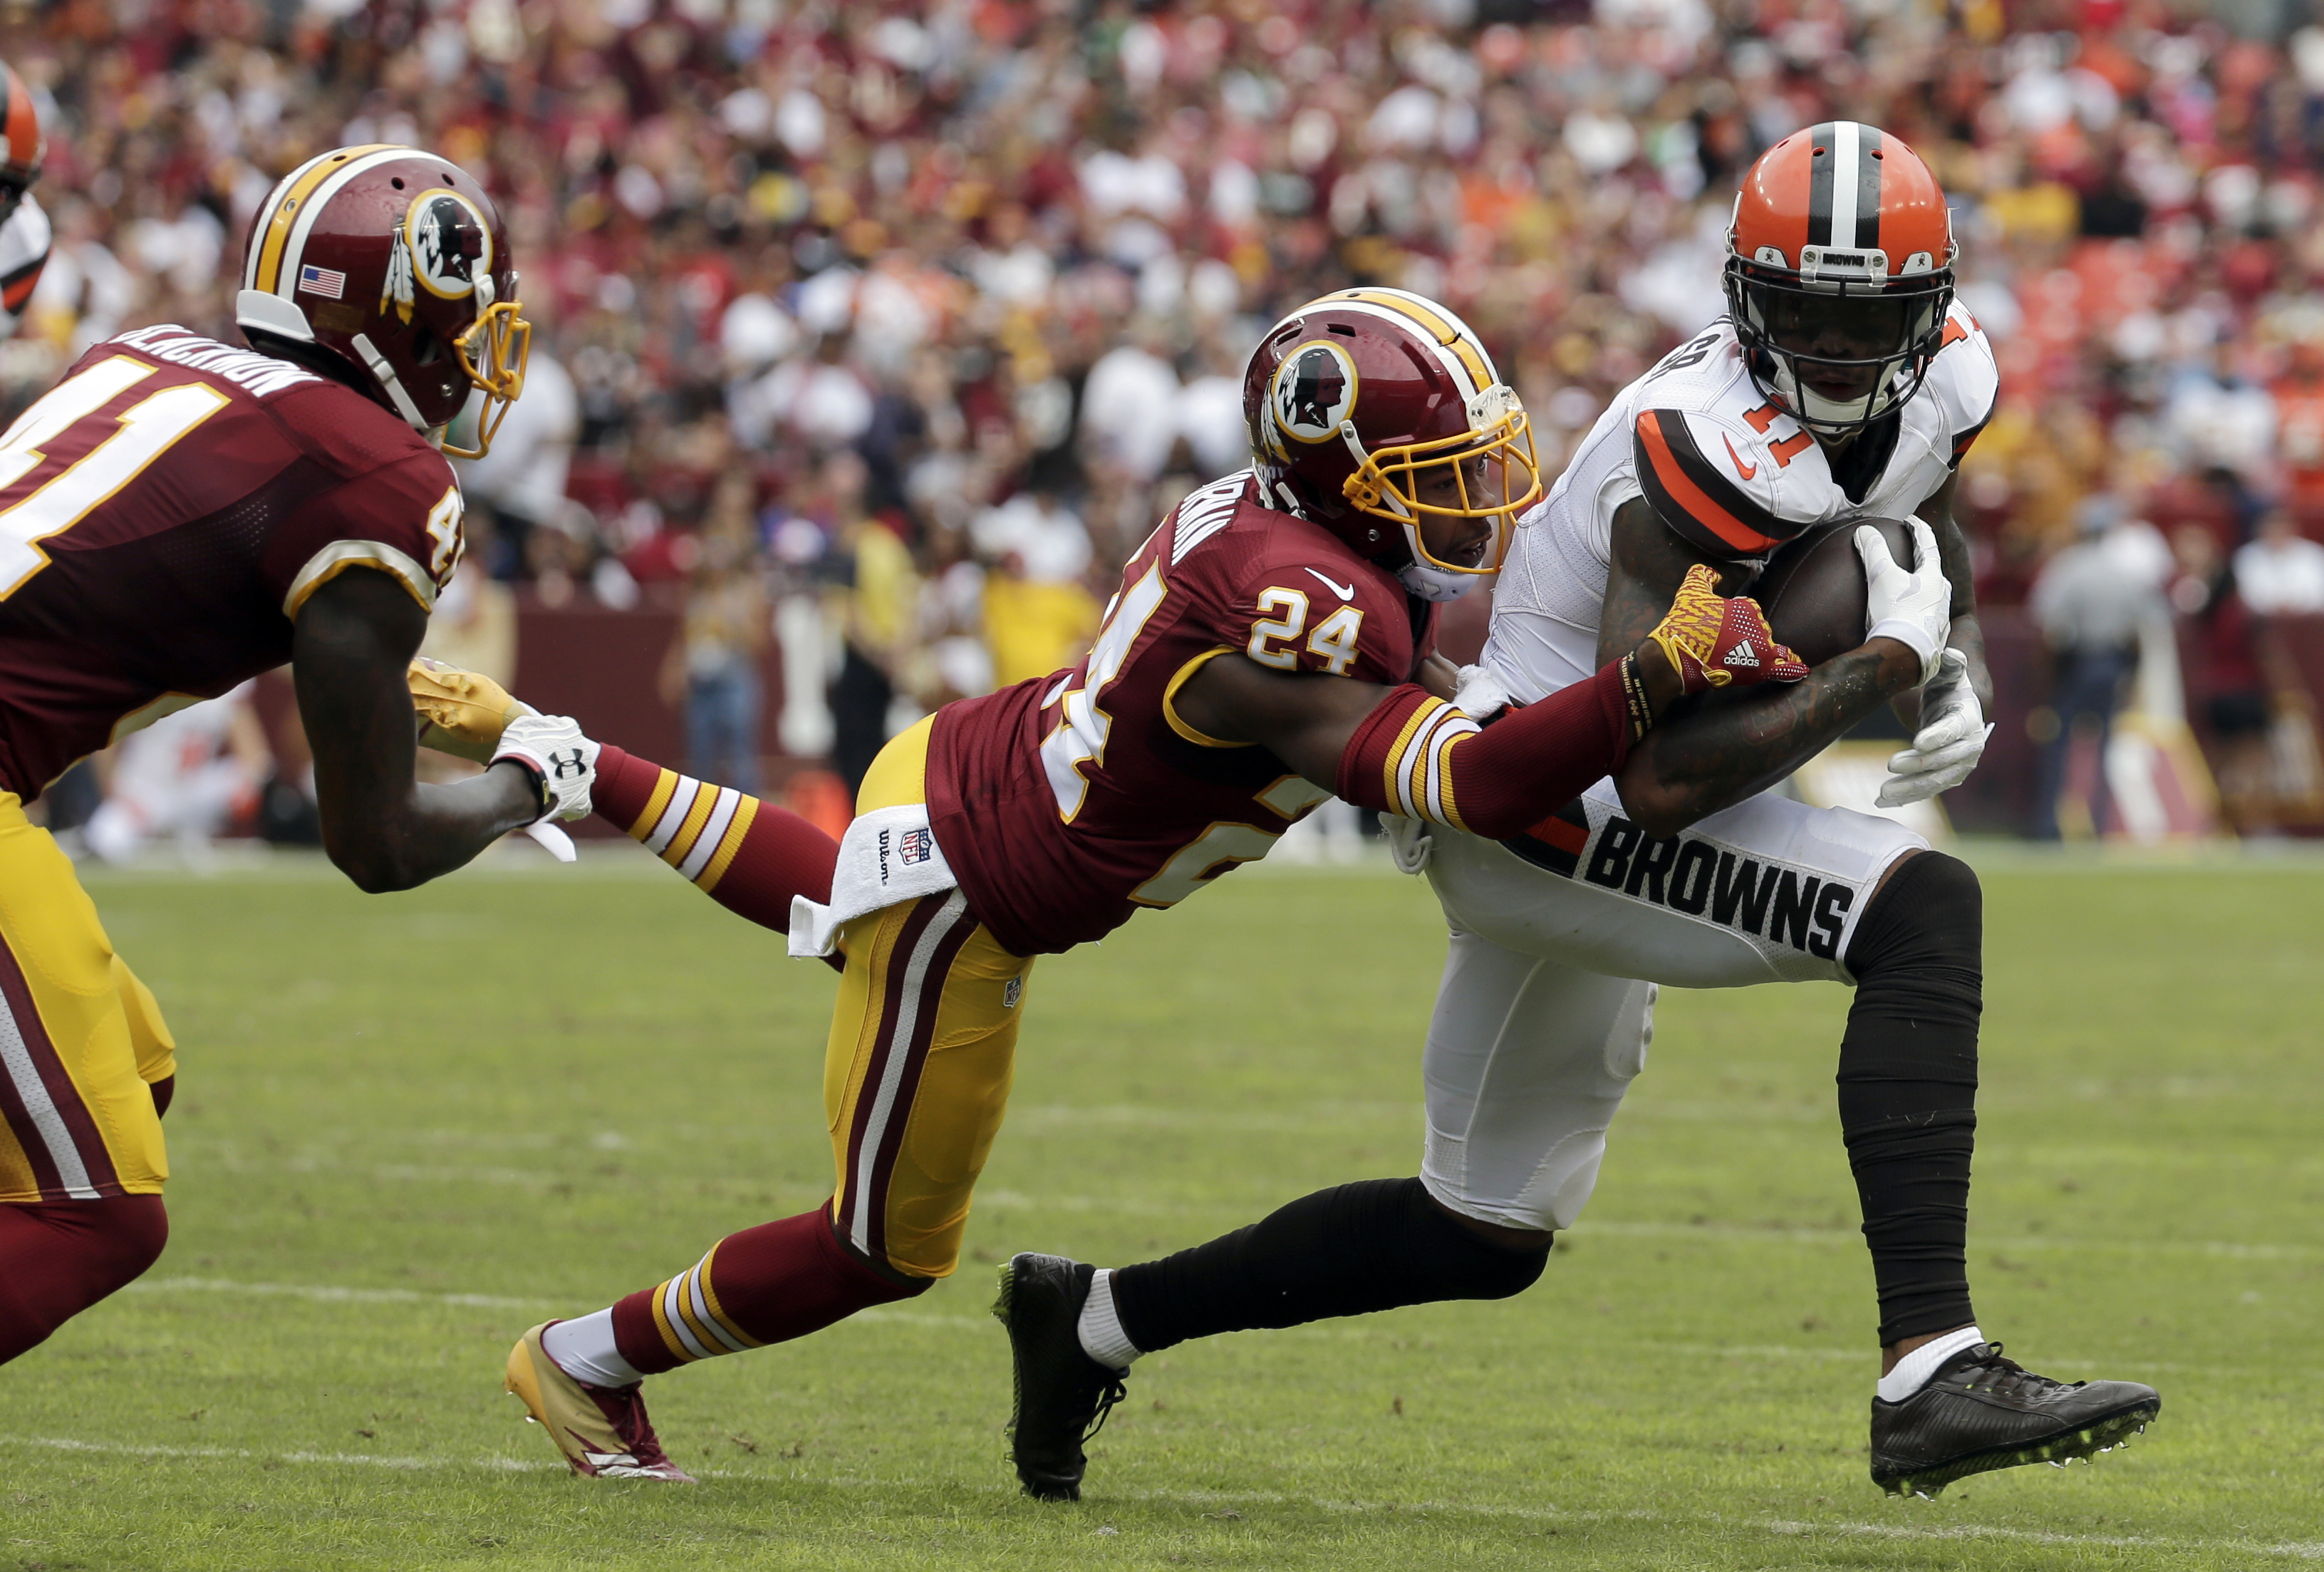 FILE - In this Oct. 2, 2016, file photo, Cleveland Browns wide receiver Terrelle Pryor (11) is tackled by Washington Redskins cornerback Josh Norman (24) during the first half of an NFL football game in Landover, Md. Its difficult to imagine where the Red